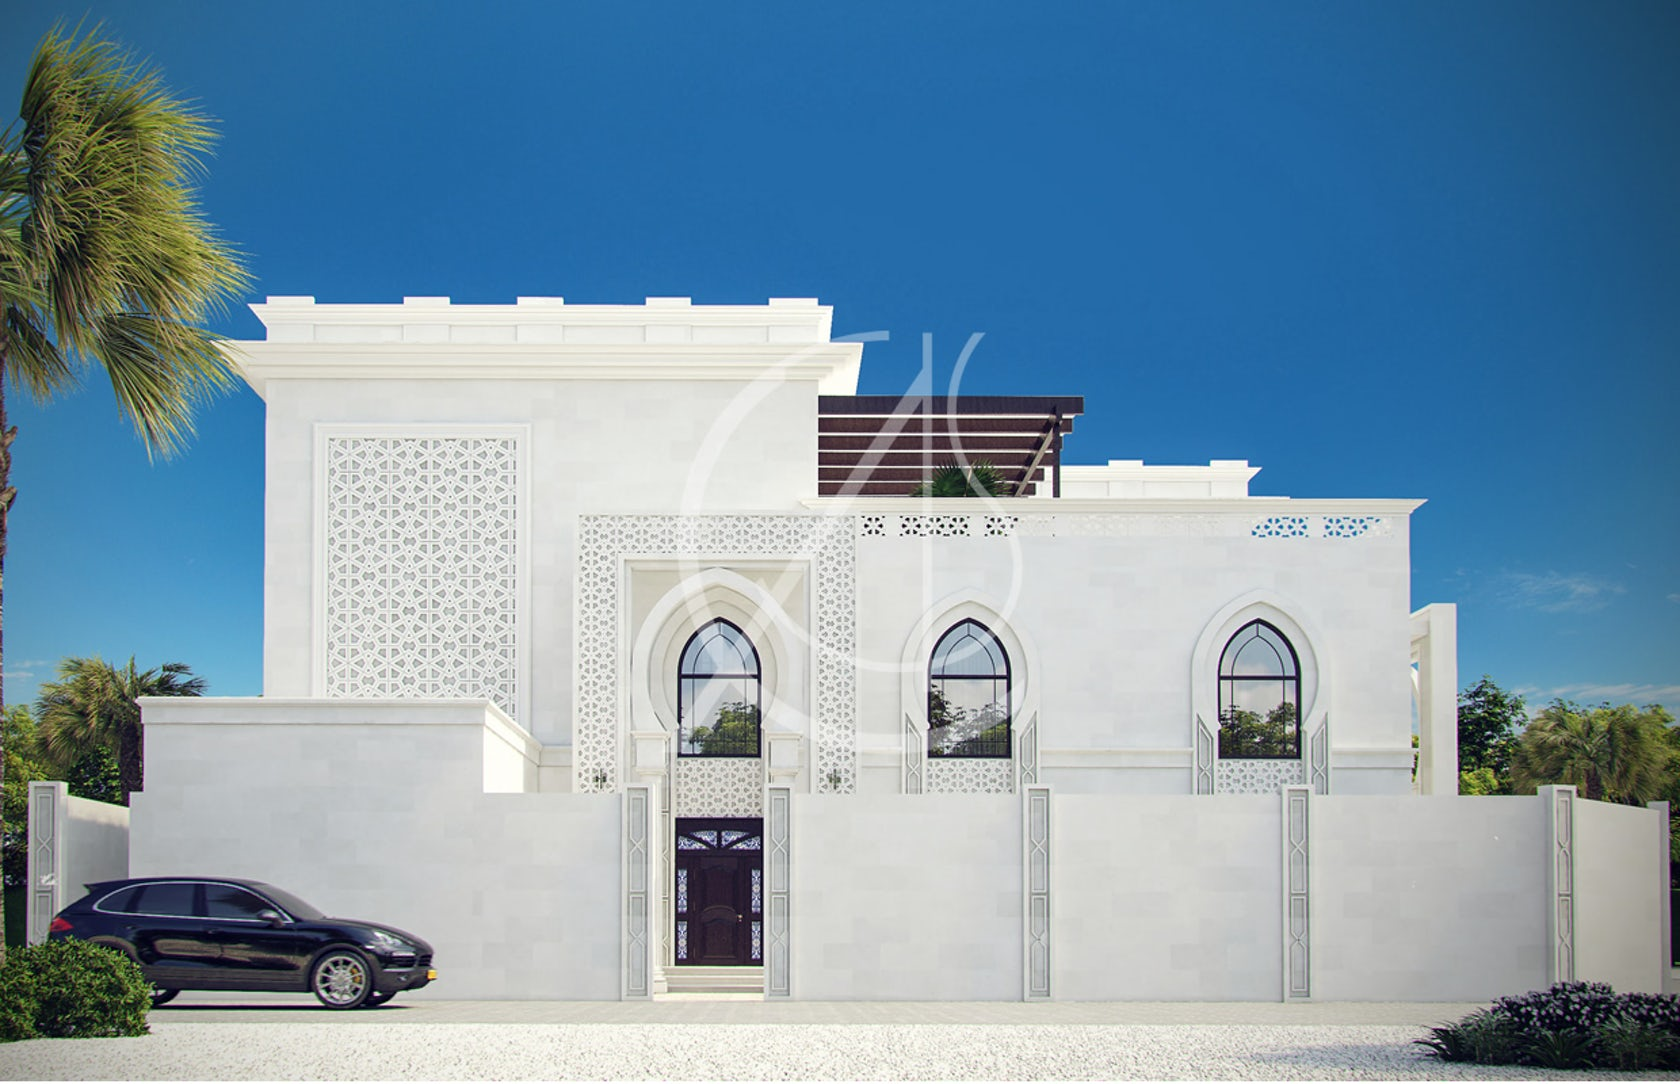 White Modern Islamic Villa Exterior Design on Architizer on colonial architecture homes, arabic architecture homes, dutch architecture homes, european architecture homes, engineering homes, french architecture homes, traditional architecture homes, ancient egyptian architecture homes, greek architecture homes, chinese architecture homes, spanish architecture homes, italian architecture homes, moorish revival homes, classical architecture homes, american architecture homes, organic architecture homes, economy homes, pakistani architecture homes, georgian architecture homes, russian architecture homes,